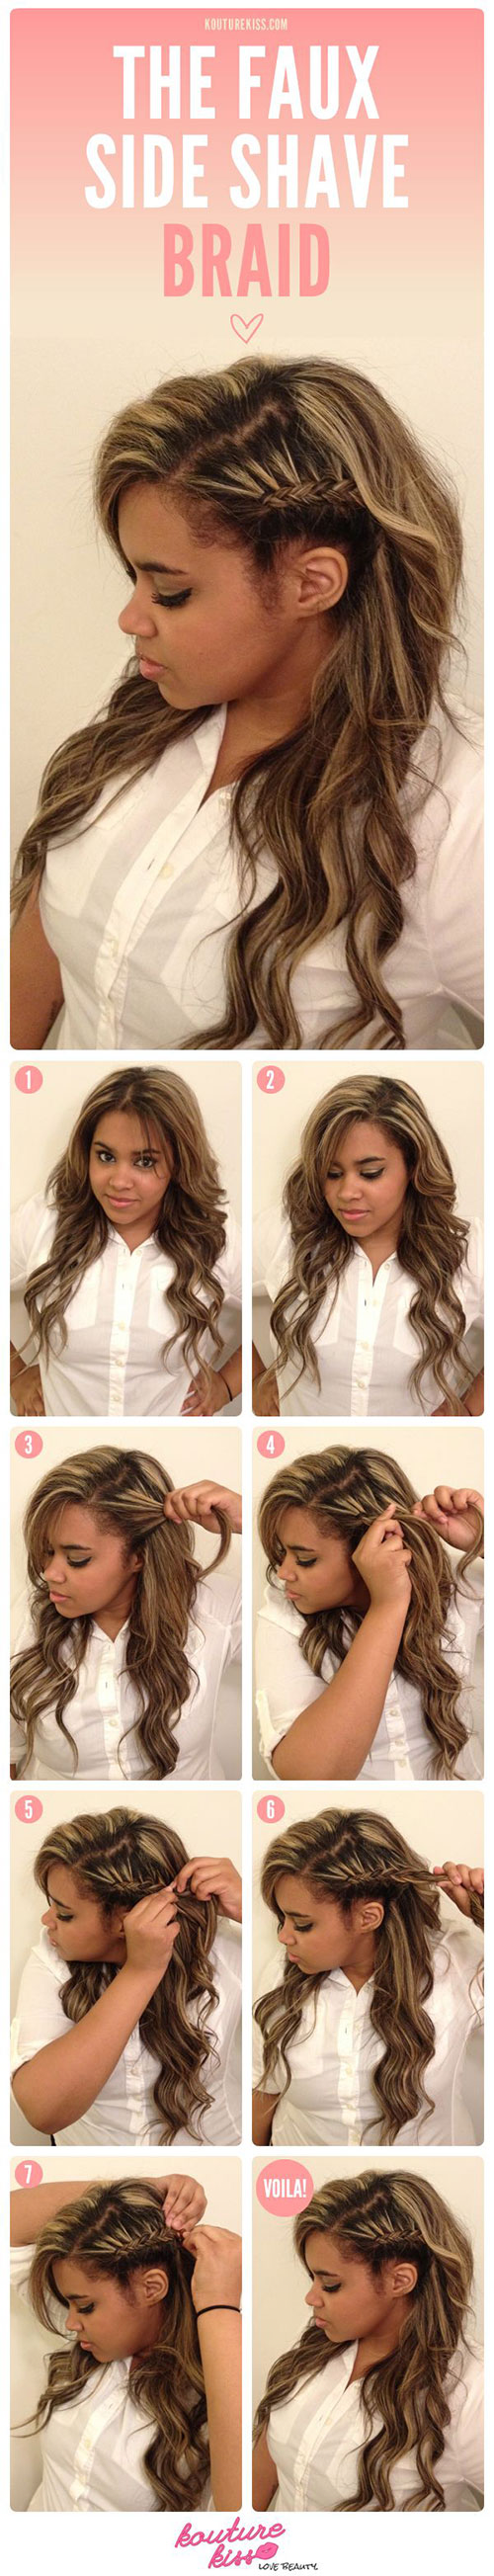 20-Easy-Step-By-Step-Summer-Braids-Style-Tutorials-For-Beginners-2015-18